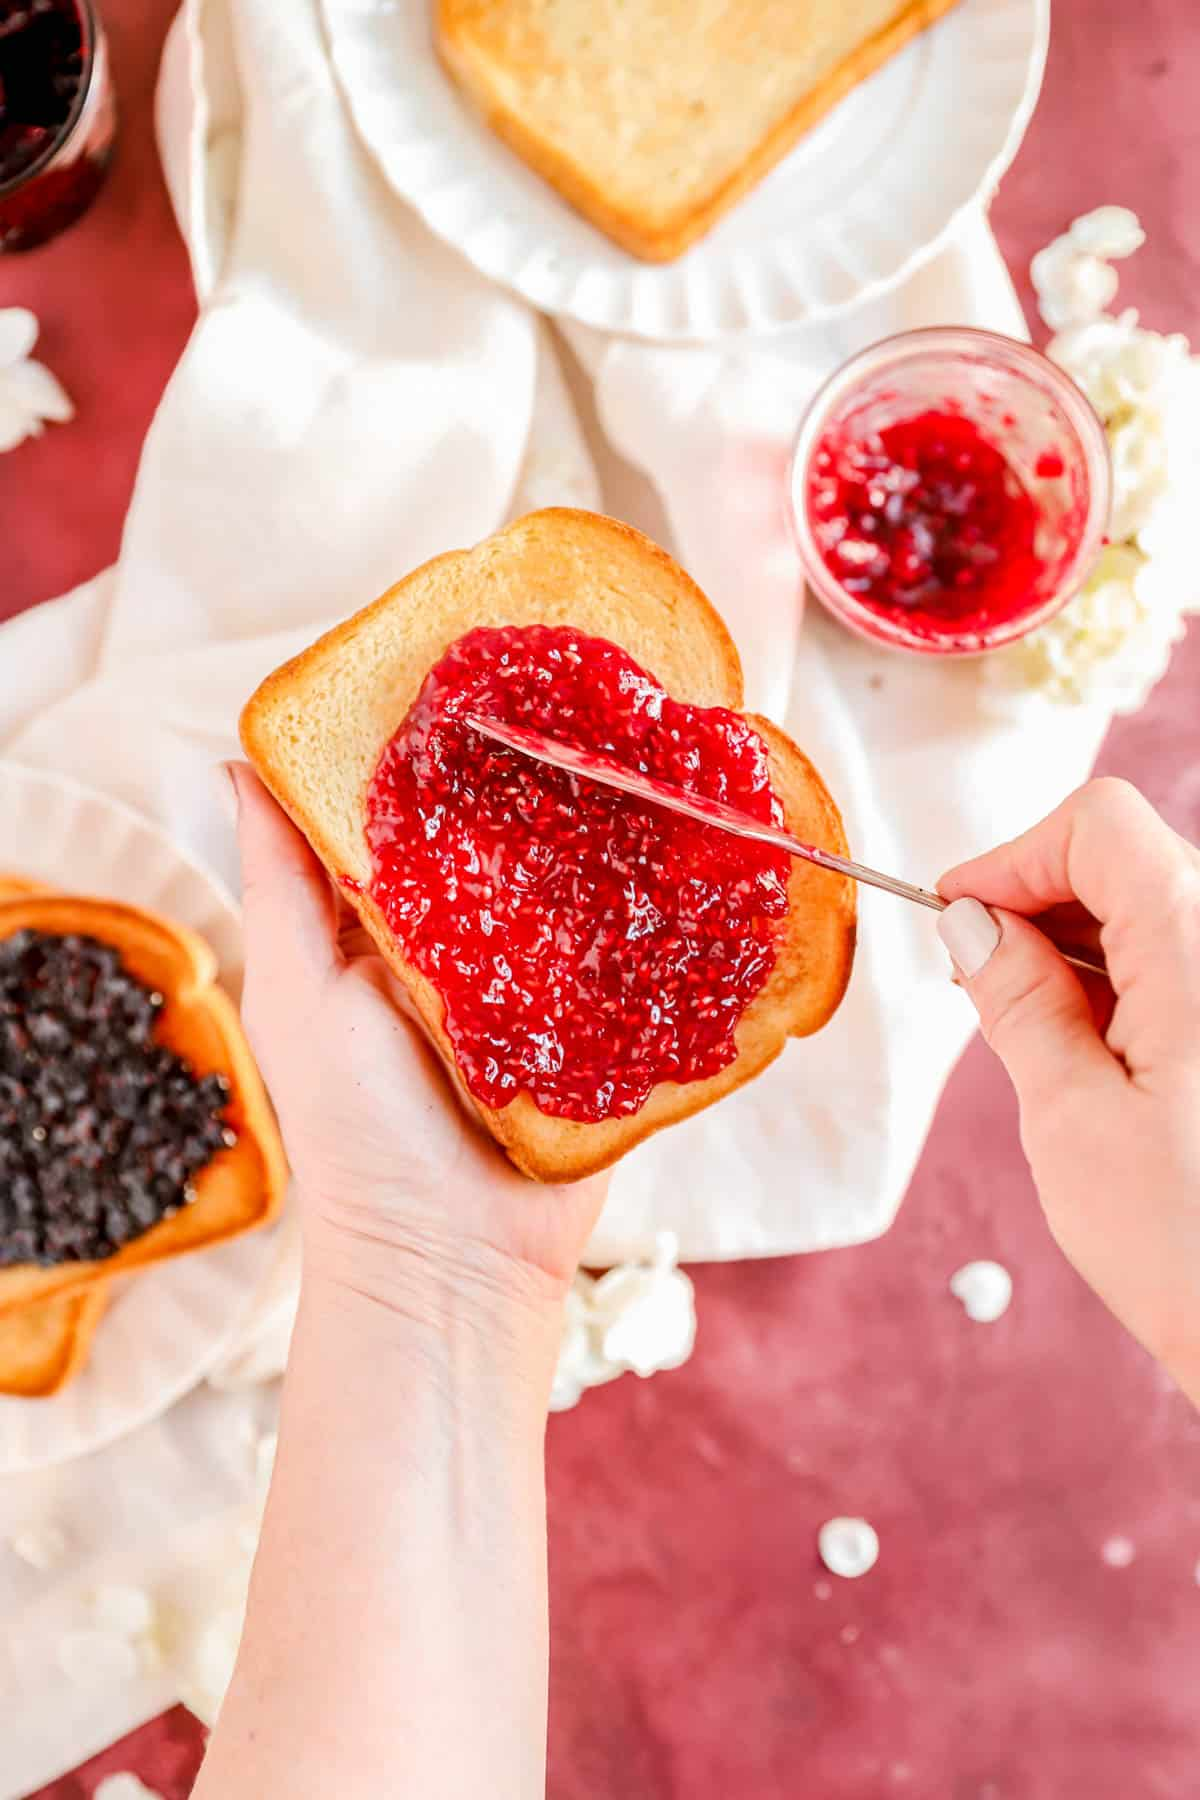 a hand holding a piece of toast and spreading homemade red raspberry jam on it.